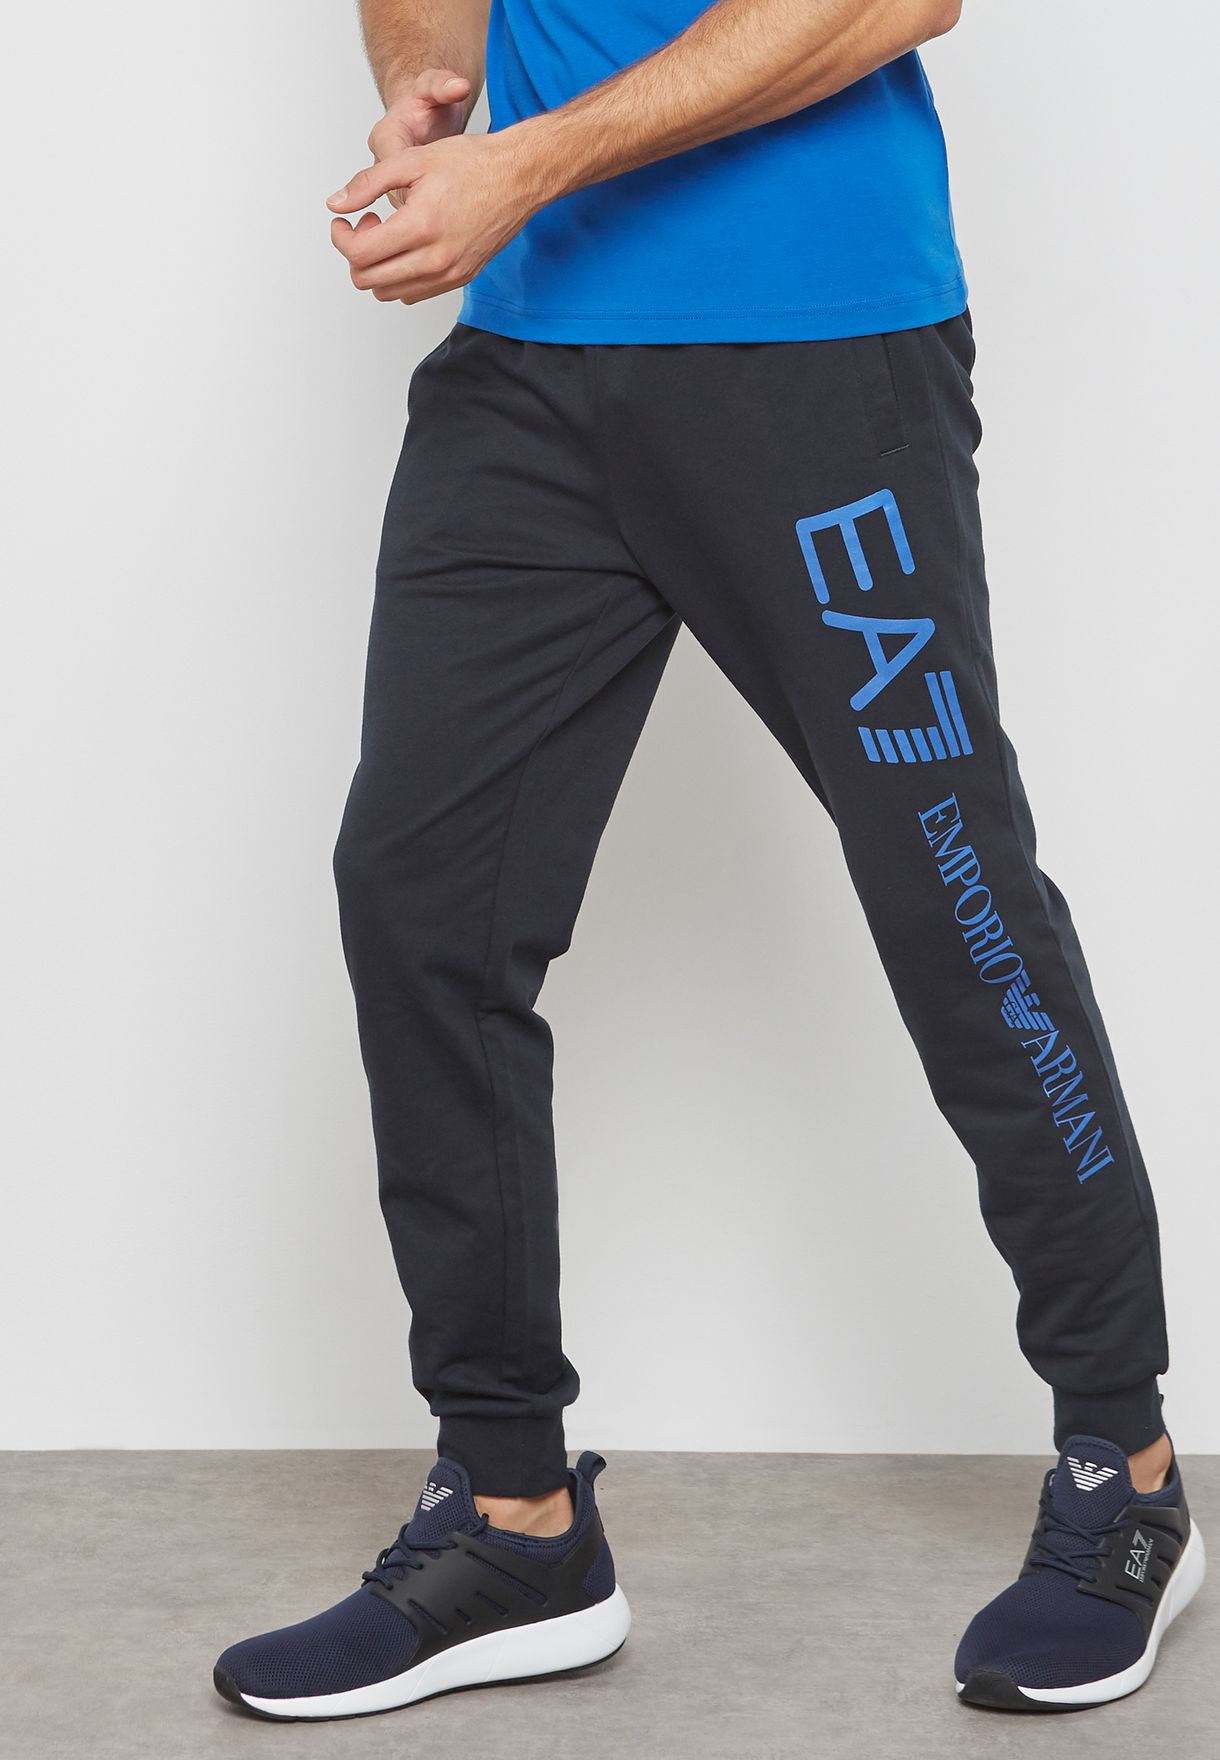 29128e06f12d78 Shop Ea7 Emporio Armani navy Train Logo Series Sweatpants PJ05Z ...